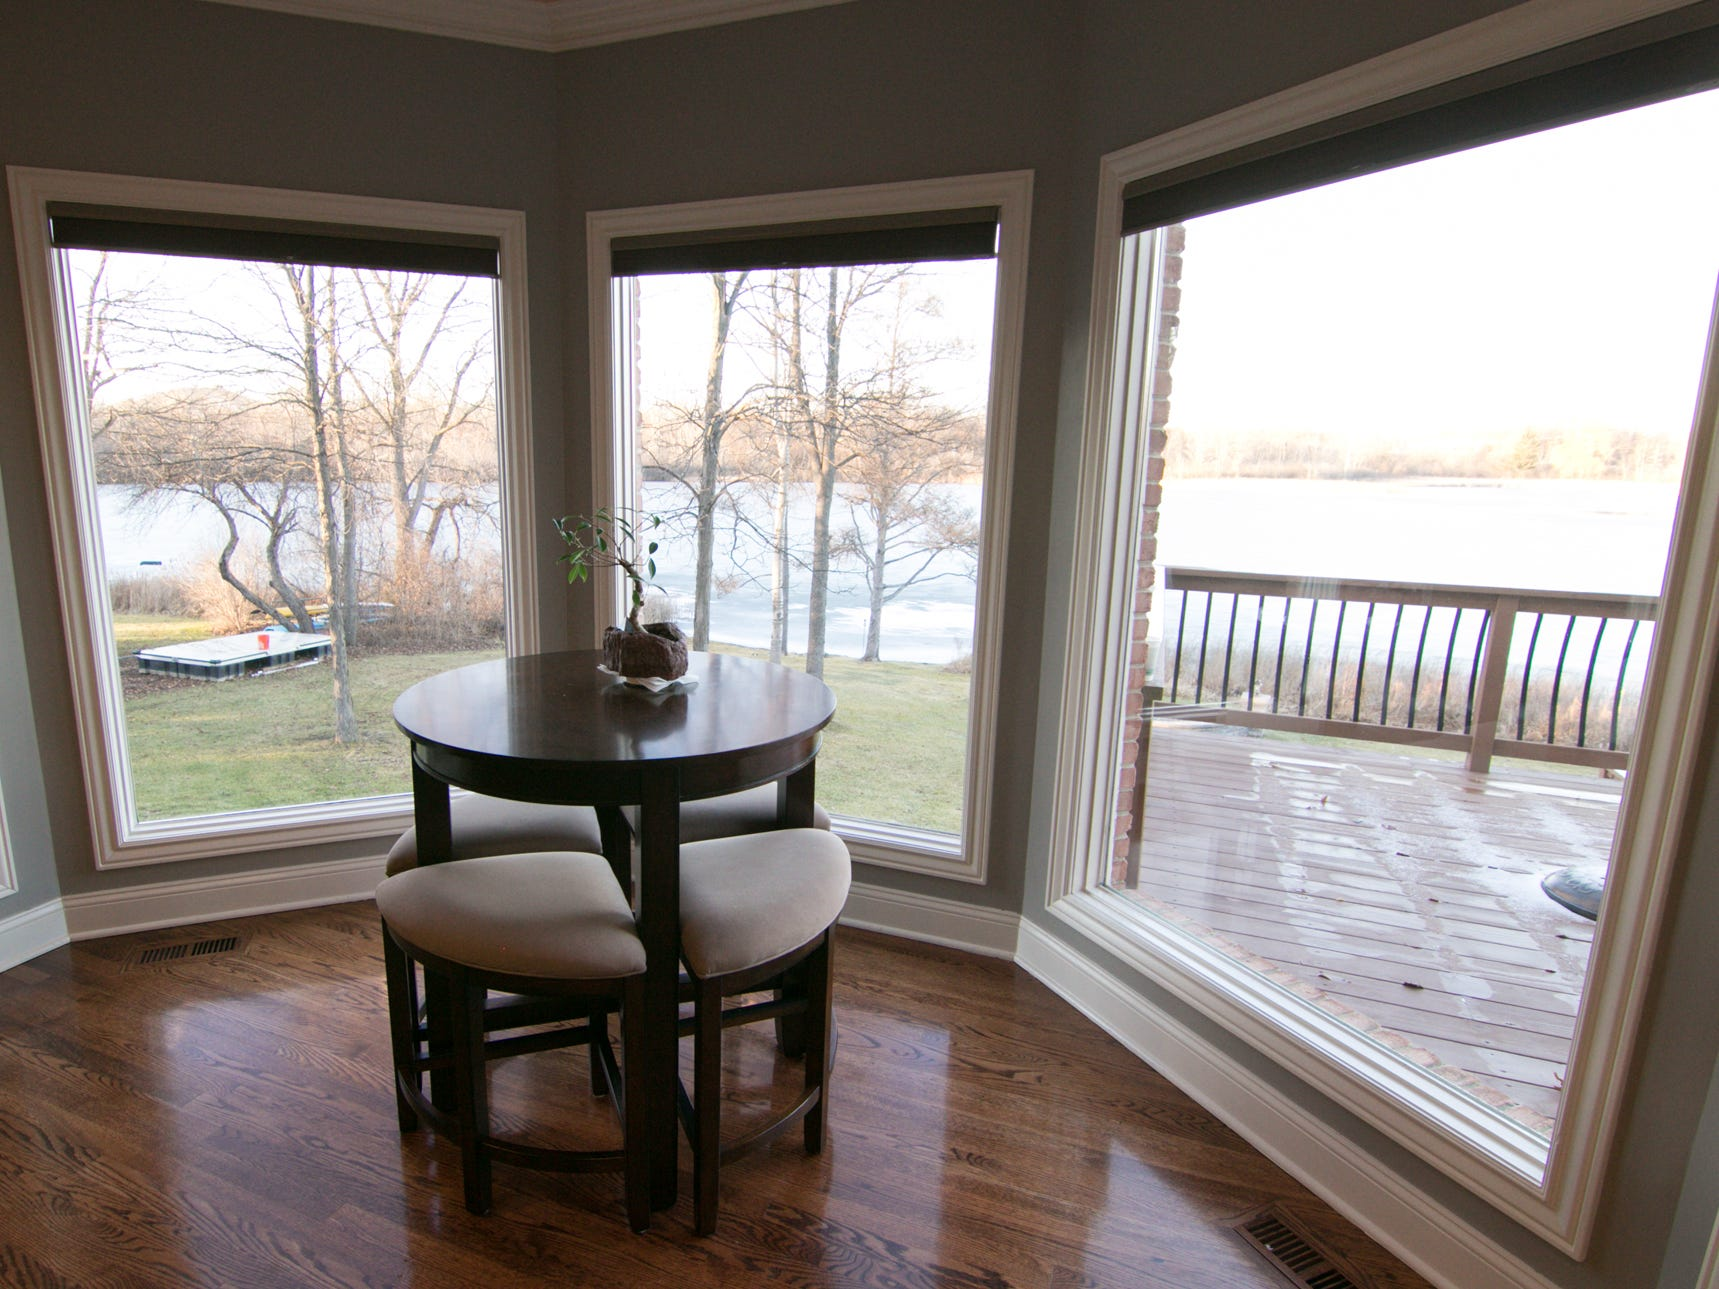 Windows throughout the home owned by Michelle and Adam Harris, shown Friday, Jan. 4, 2019, provide spectacular views of Worden Lake in Genoa Township.